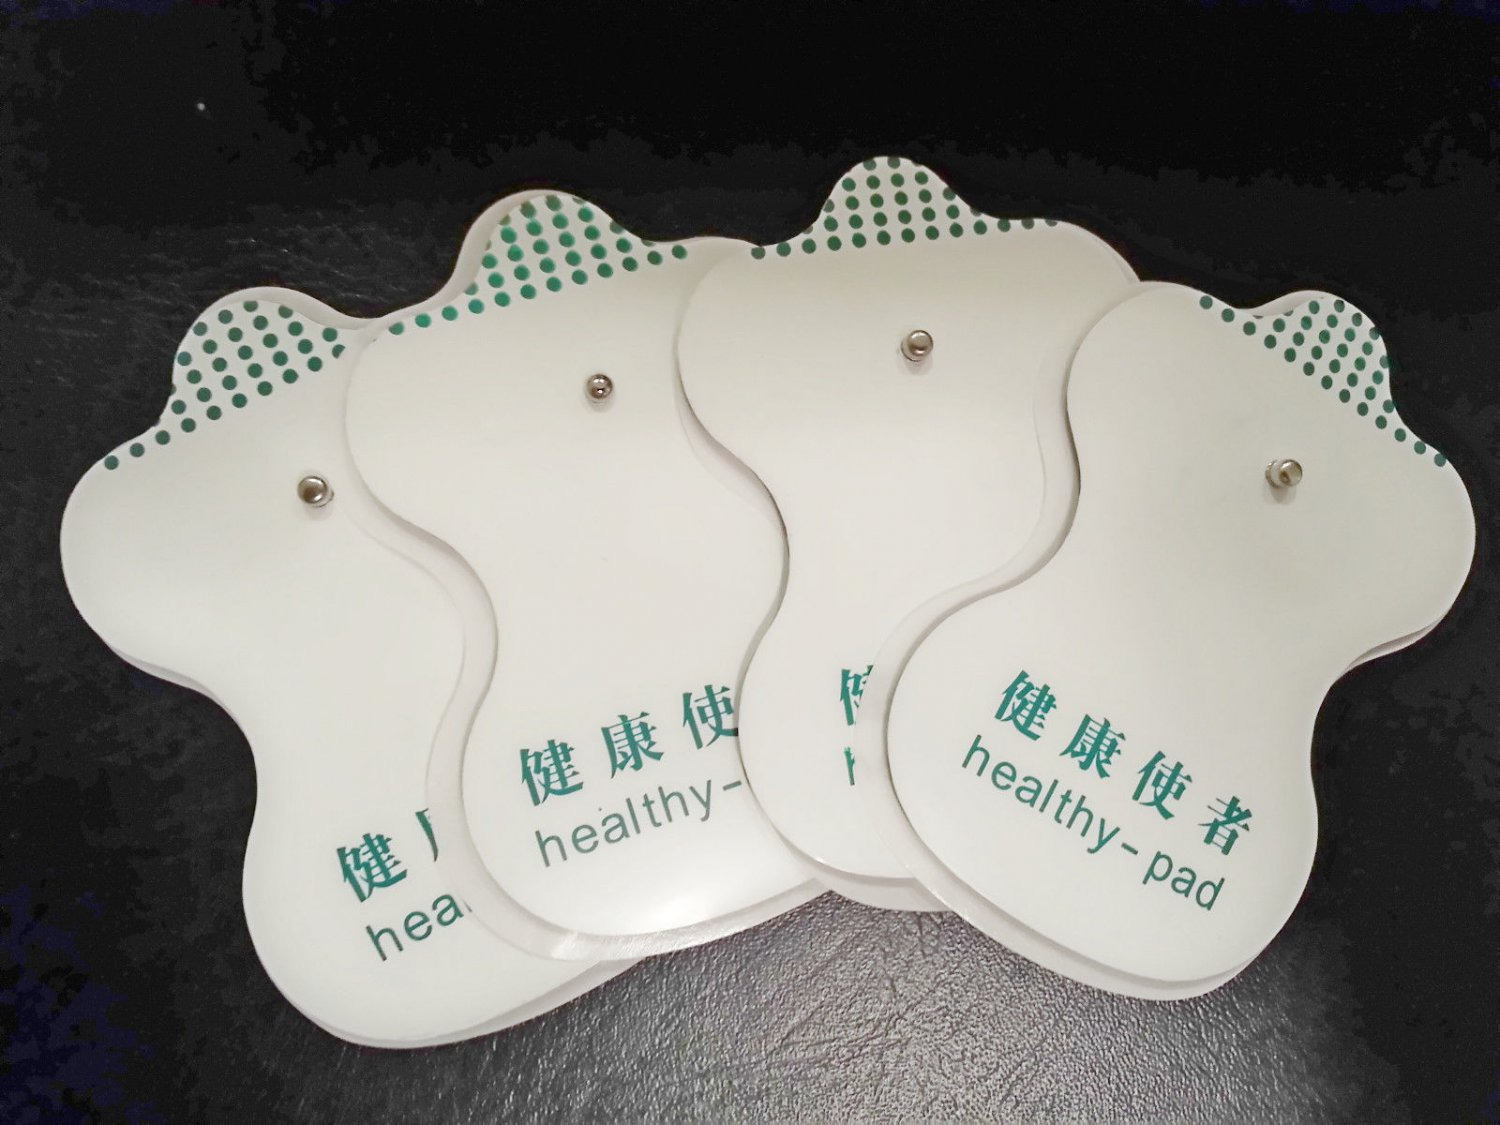 Electrode Pads (4) for Digital Massage / TENS / Electronic Physiotherapy